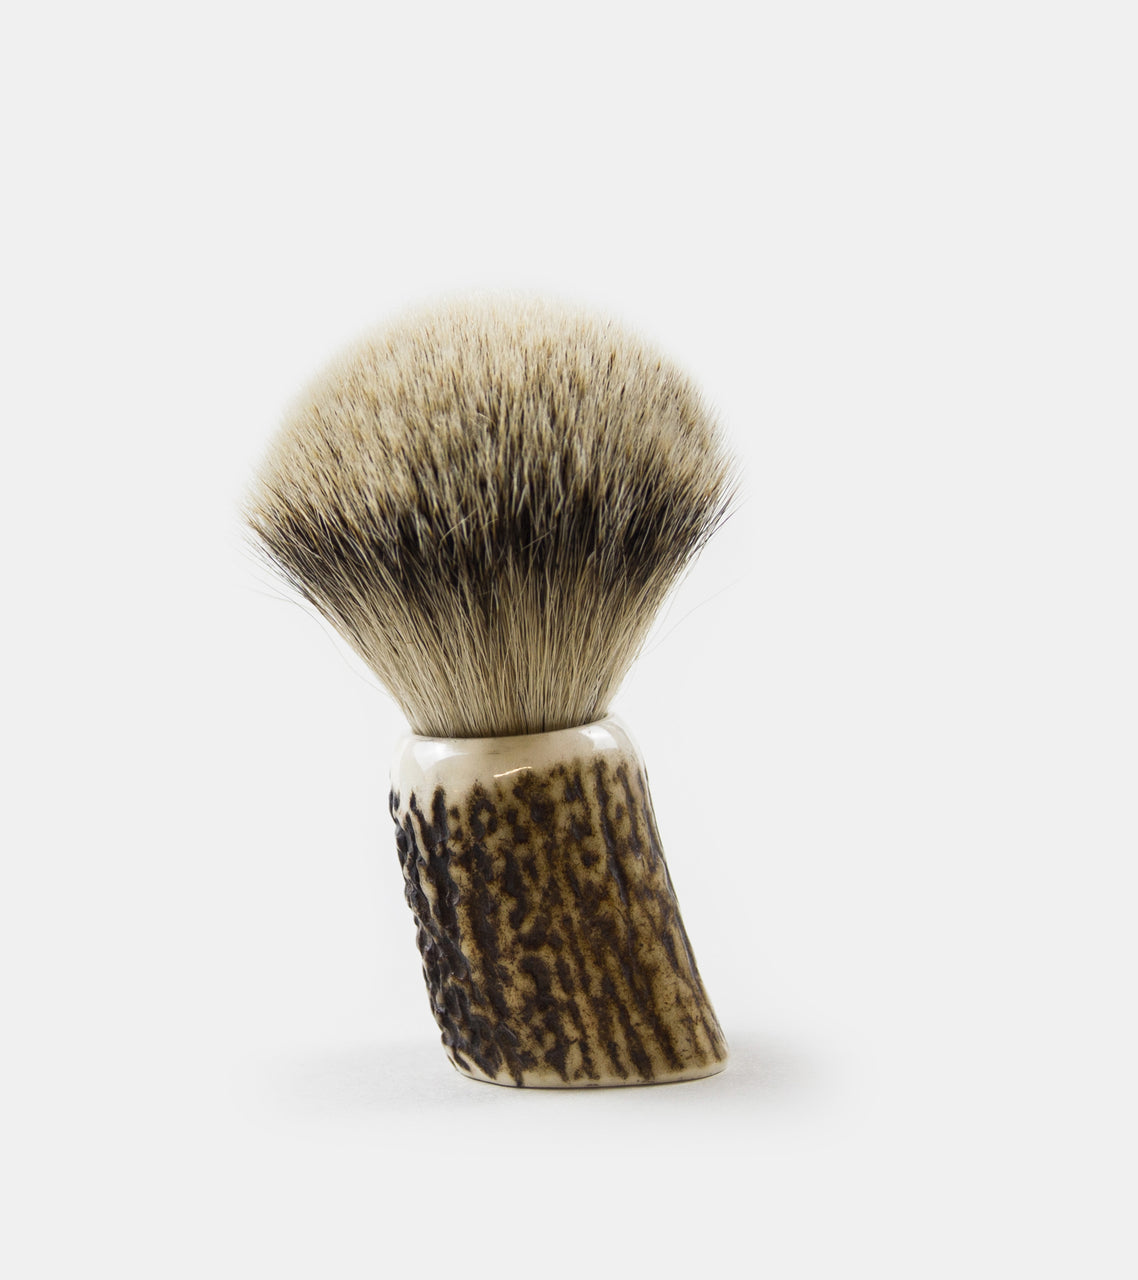 Silver Tip Badger Shave Brush with Deer Horn Handle